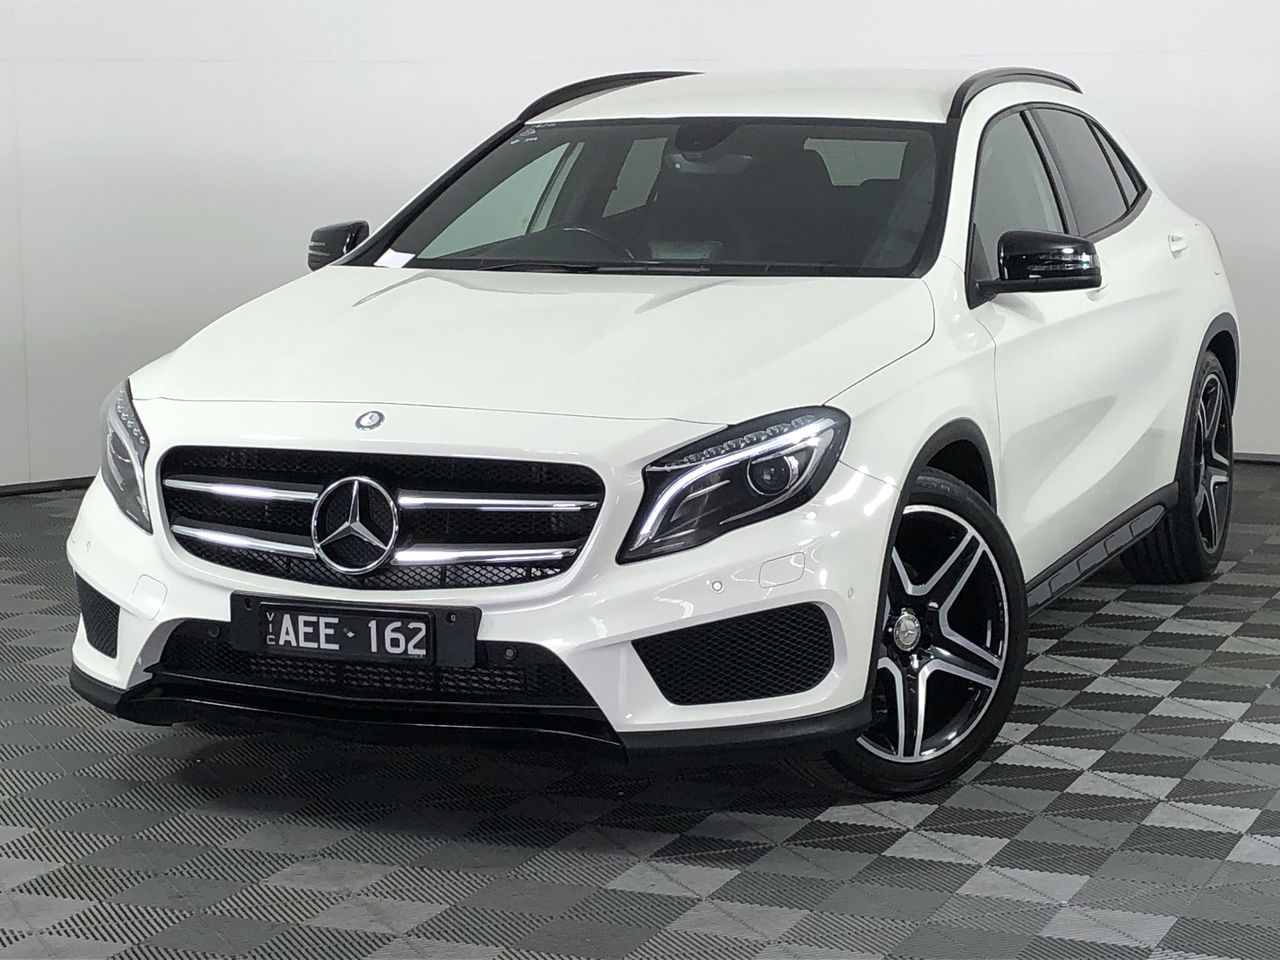 2015 Mercedes Benz GLA-Class GLA200 CDI X156 Turbo Diesel 7 man Wagon